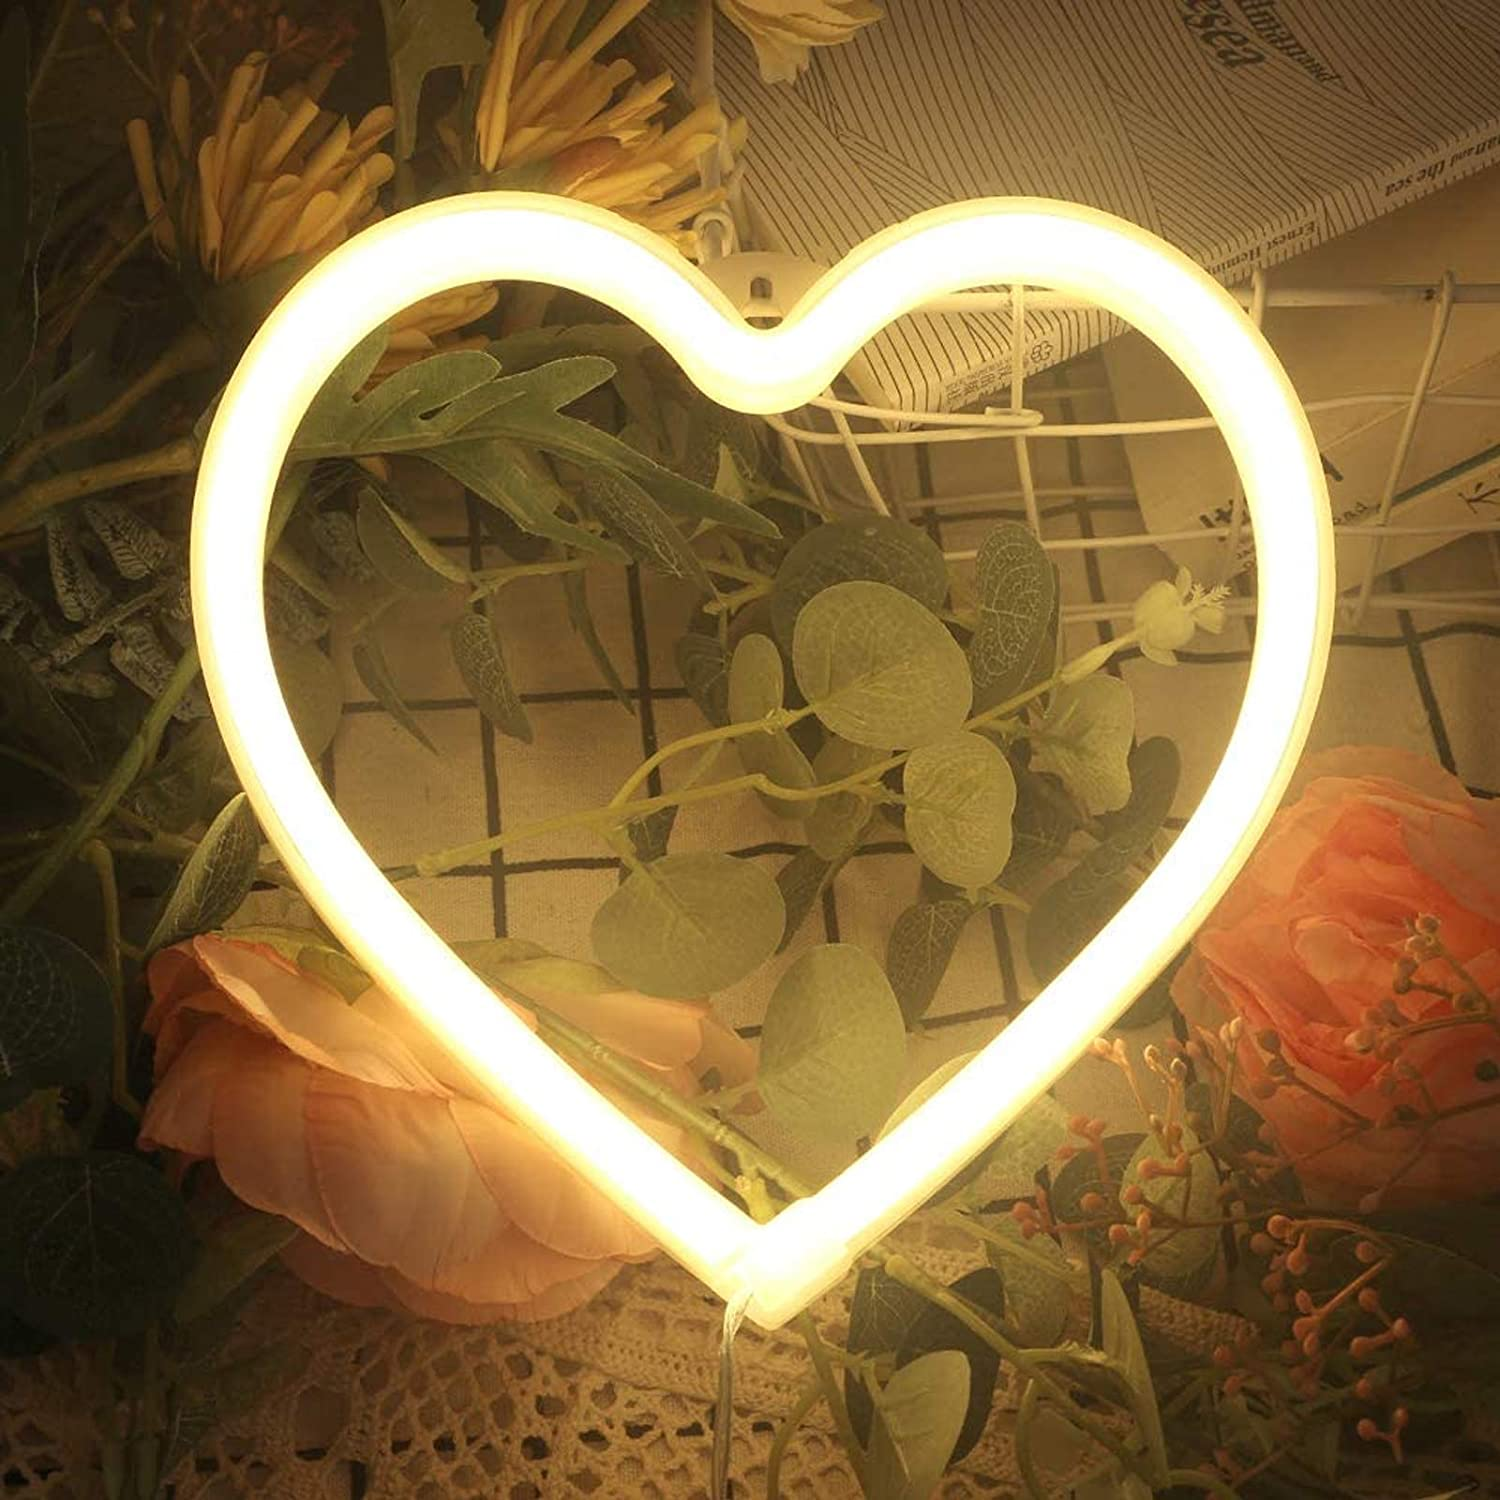 Heart Neon Signs For Wall Decor Usb Or Battery Decor Light Neon Light For Bedroom Led Neon Decorative Lights For Christmas Party Girls Living Room Warm White Amazon Com